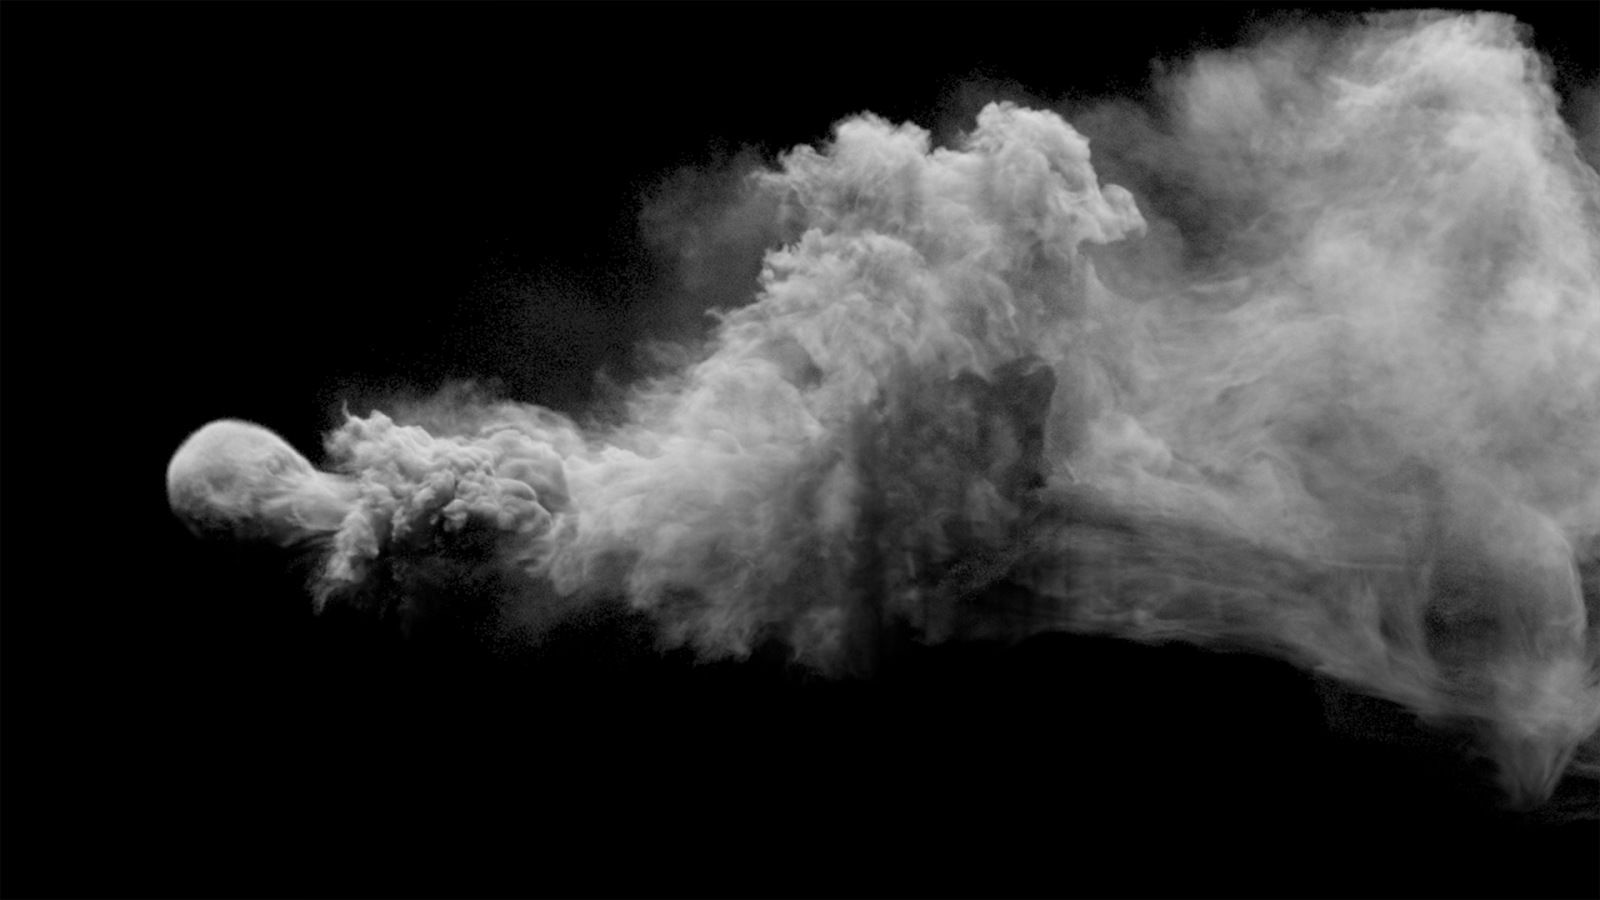 smoke, Smoke, Smoke Cloud, Sm